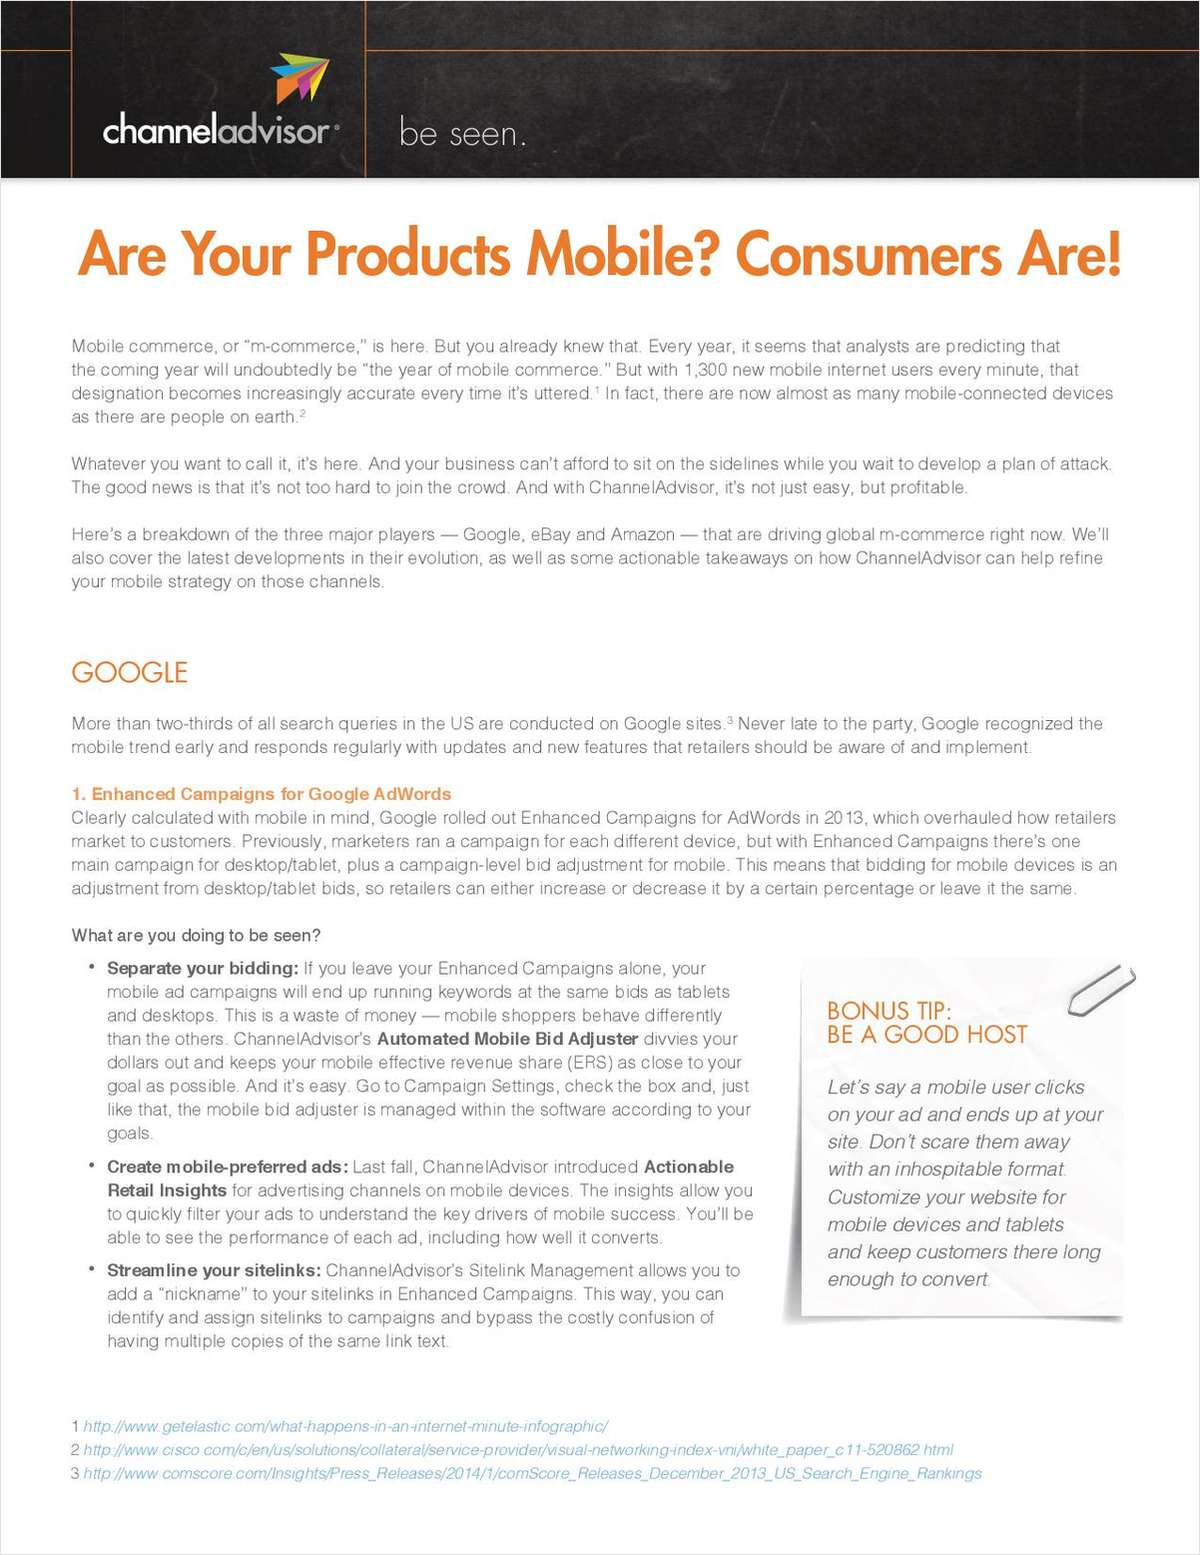 Are Your Products Mobile? Consumers Are!